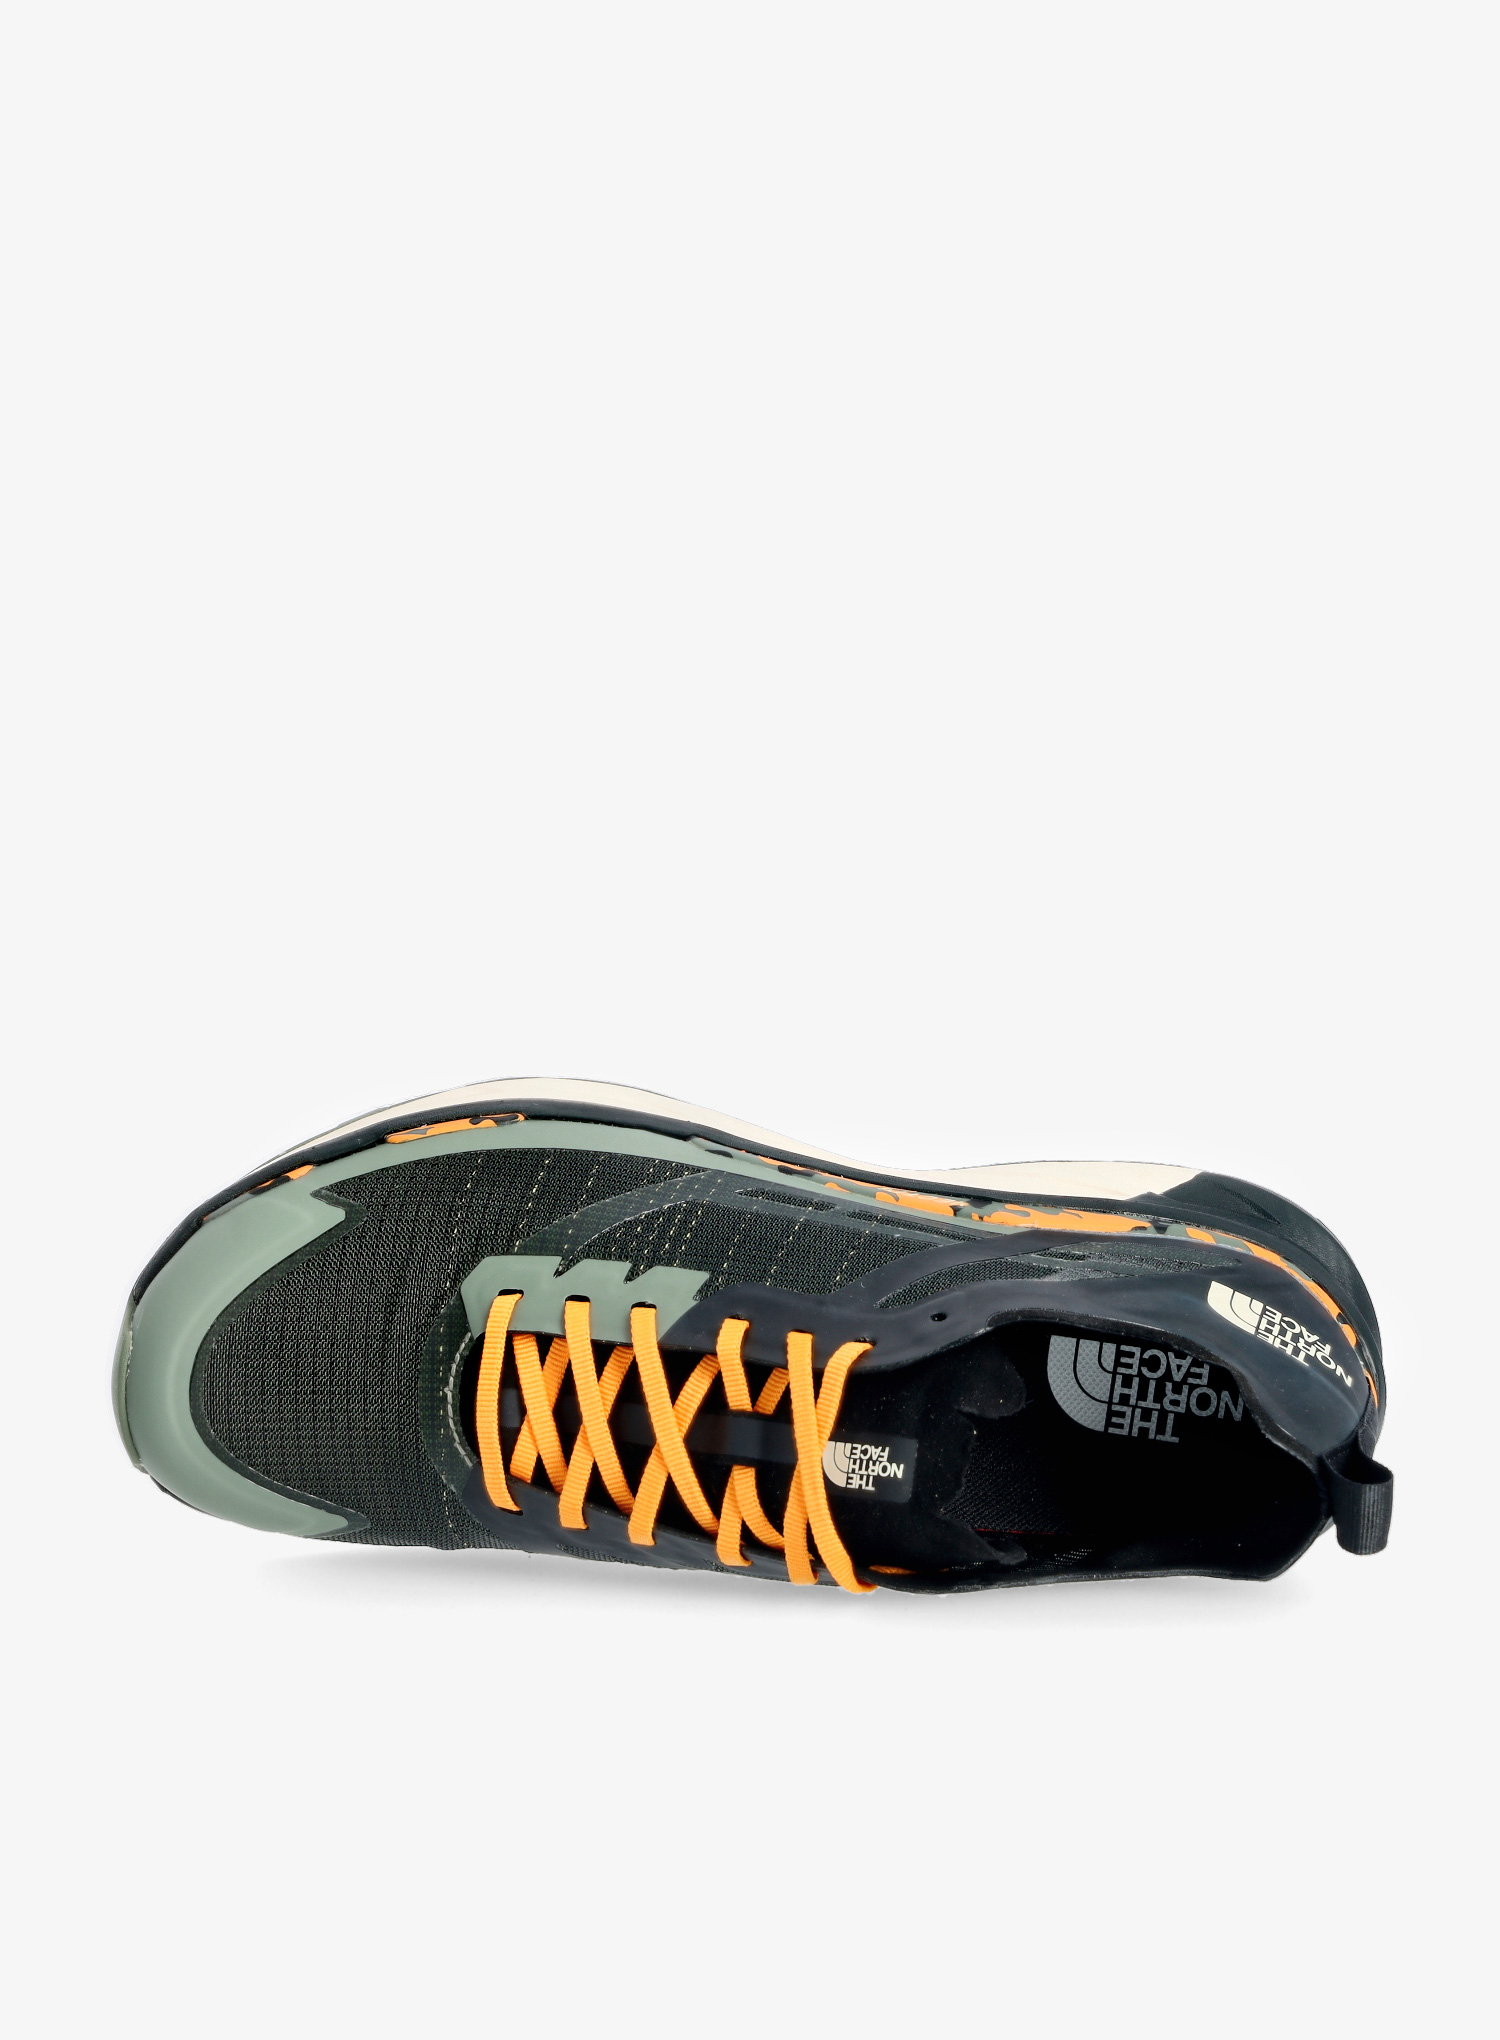 Buty trailowe The North Face Vectiv Infinite LTD - agave green/gold - zdjęcie nr. 5